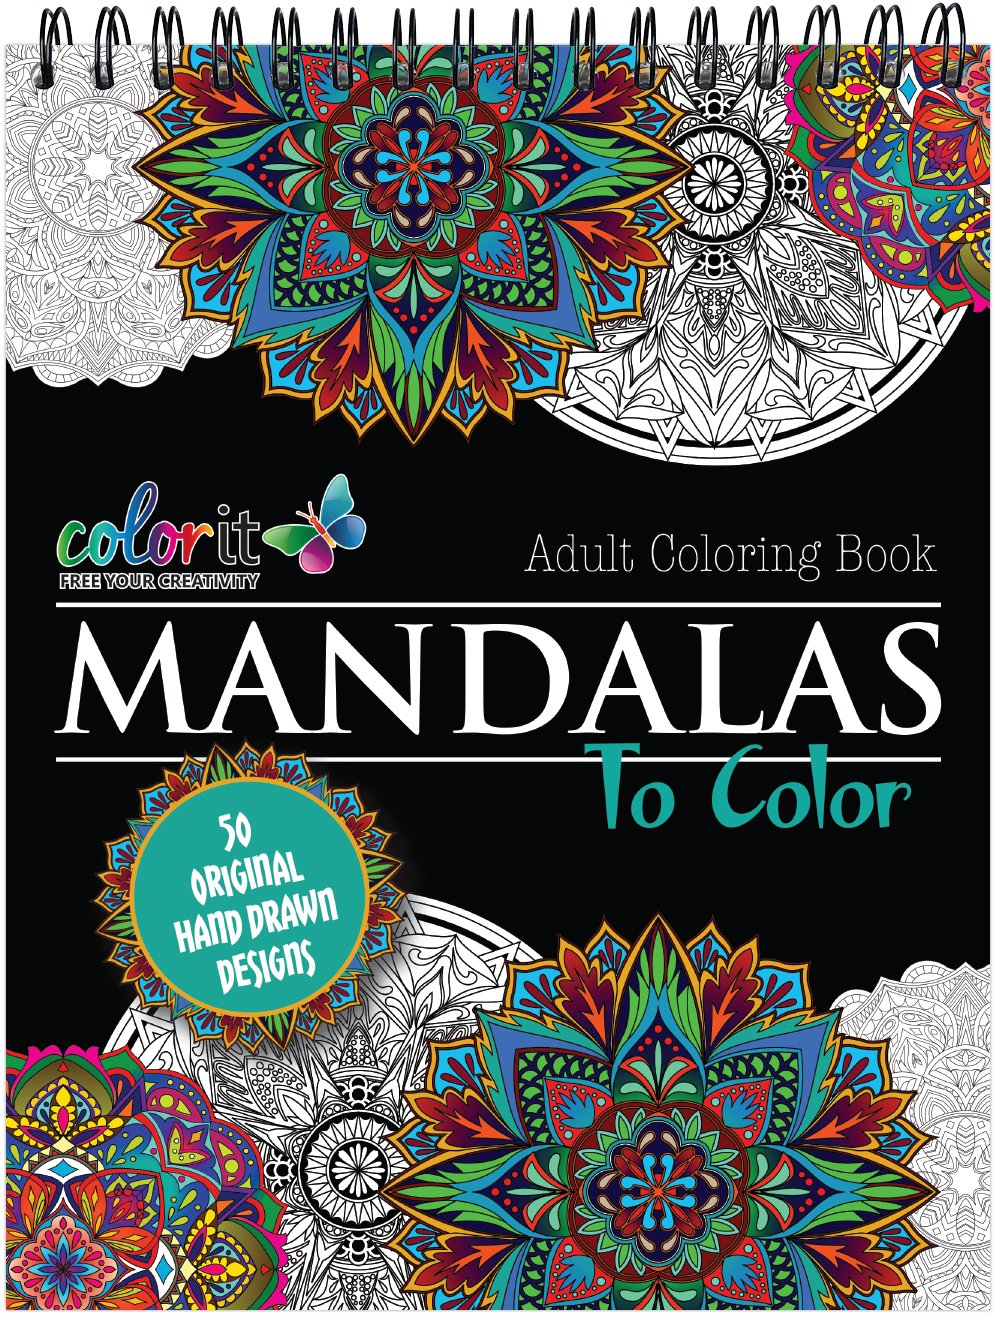 Mandala Coloring Book For Adults With Thick Artist Quality Paper Hardback Covers And Spiral Binding By ColorIt Terbit Basuki 9780996511216